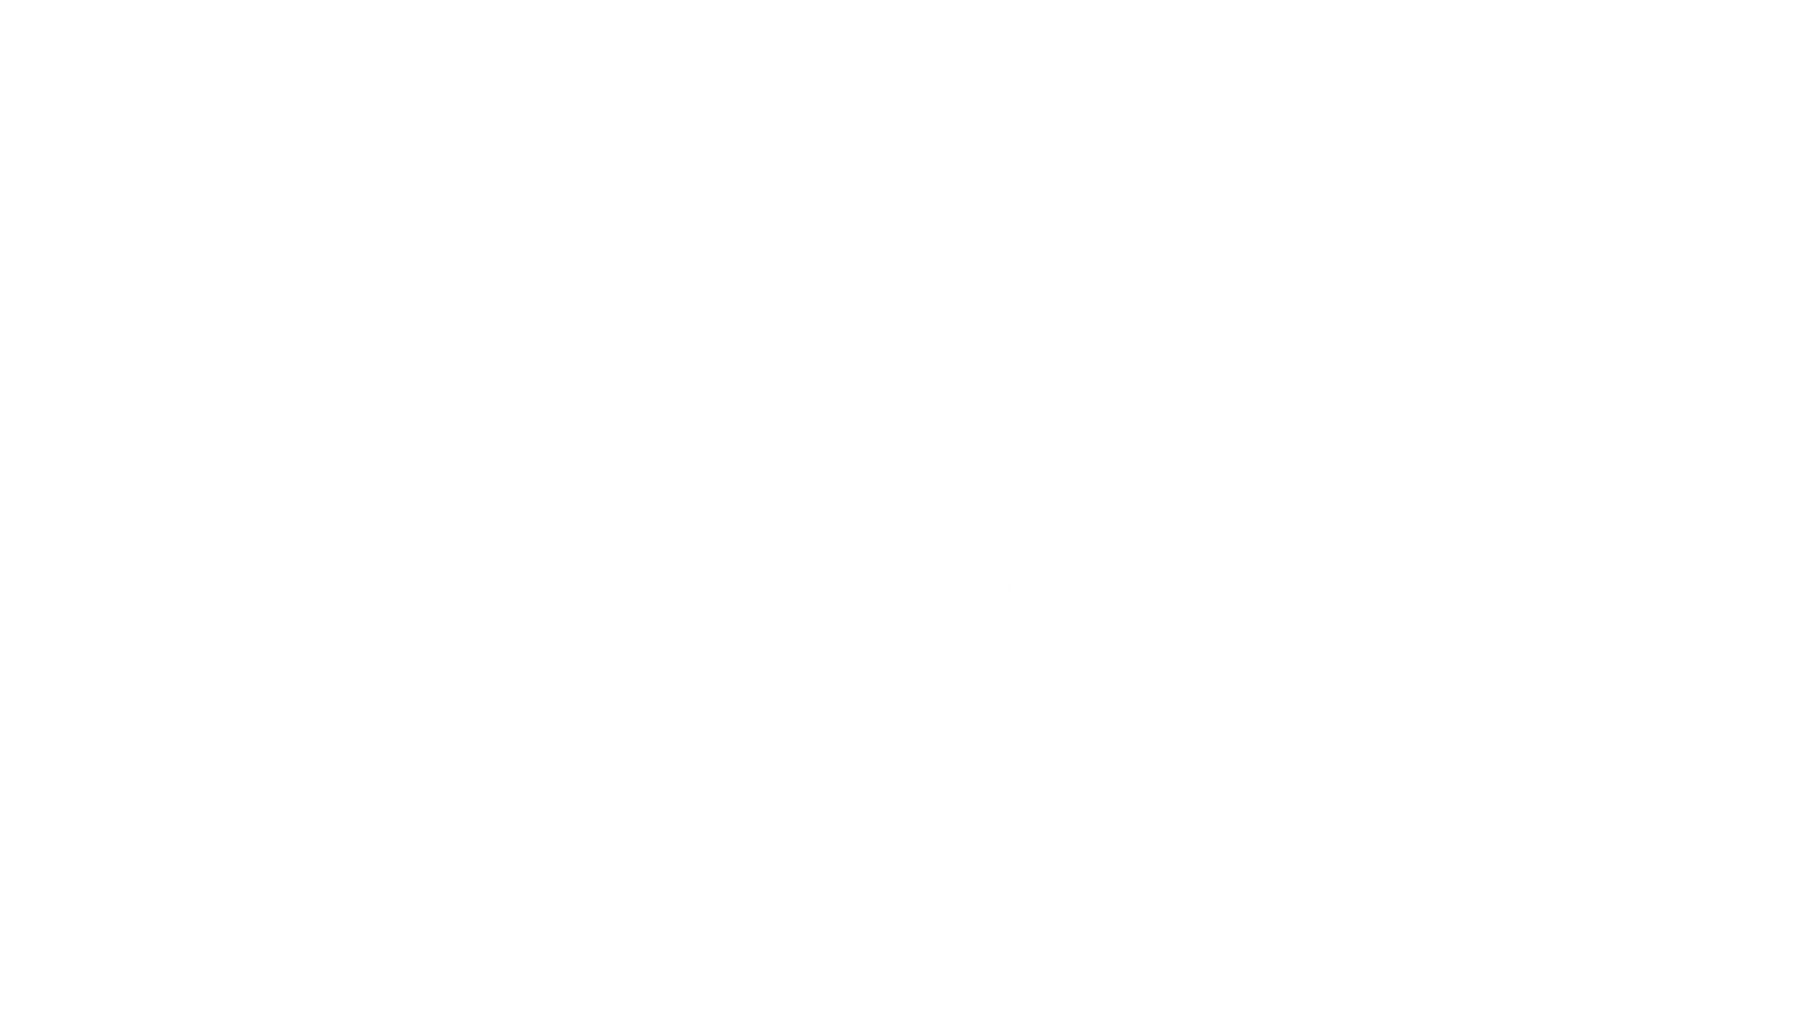 ascend-cover-text.png